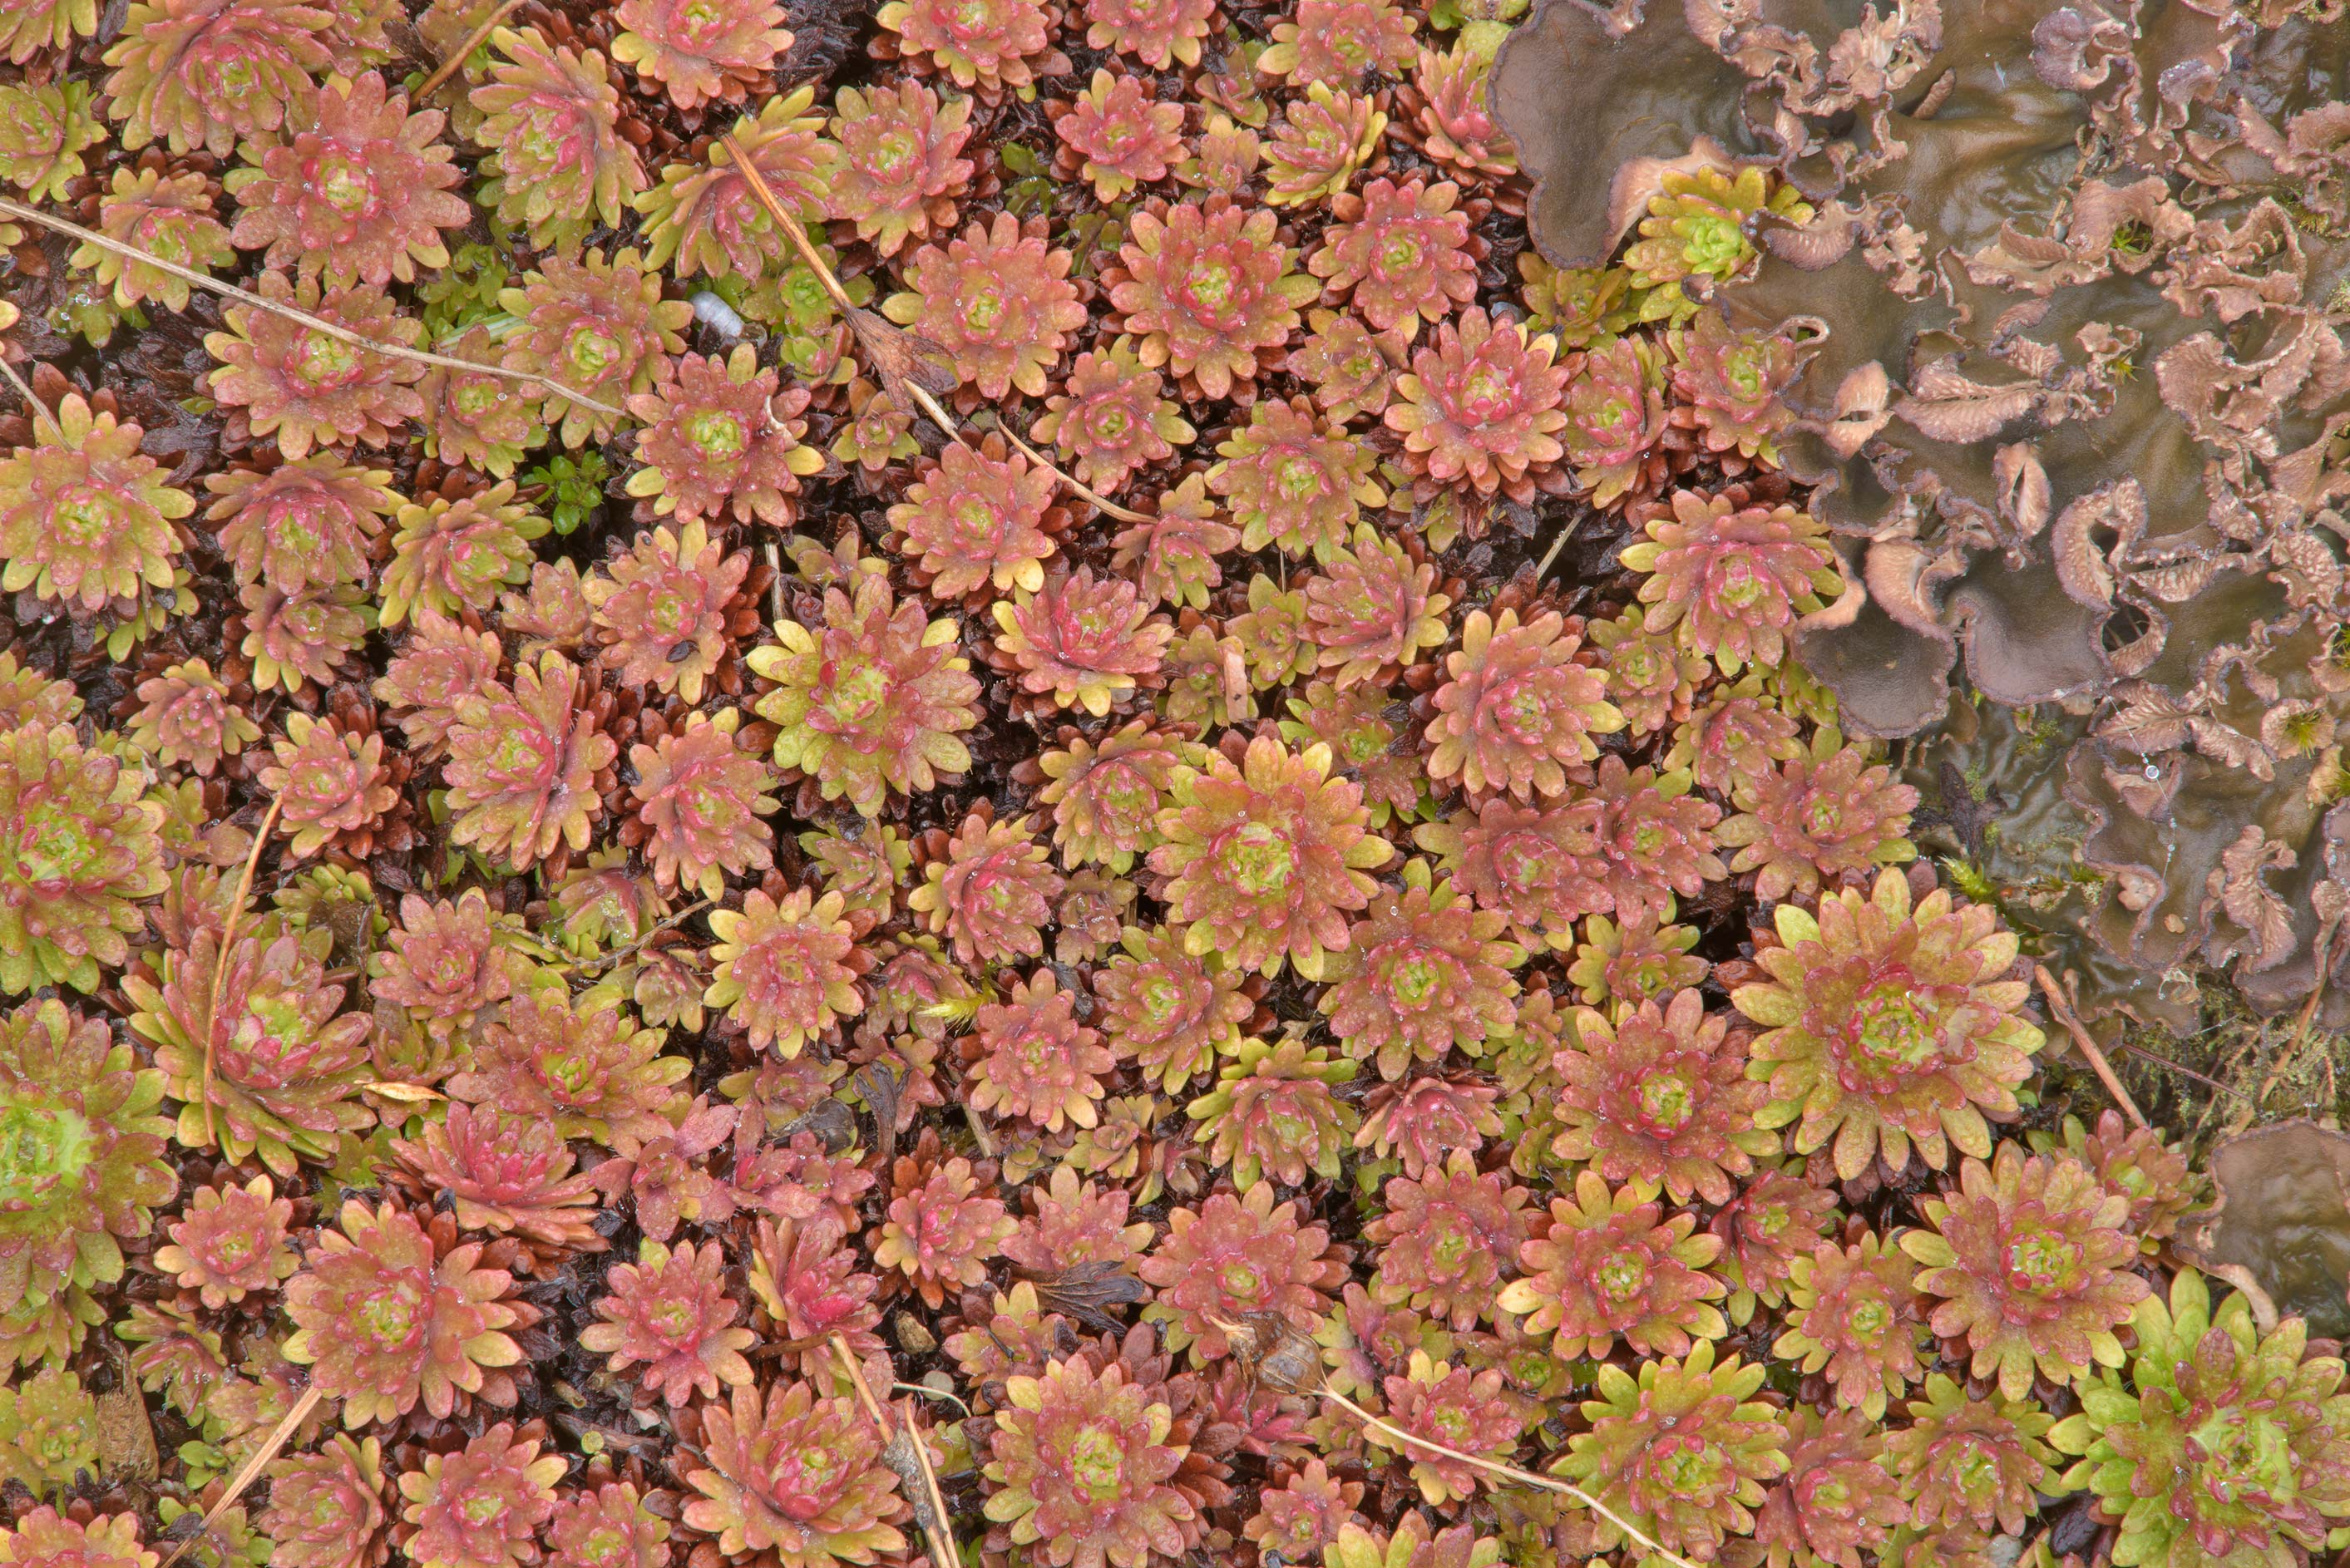 Saxifrage on alpine hills in Botanic Gardens of...Institute. St.Petersburg, Russia